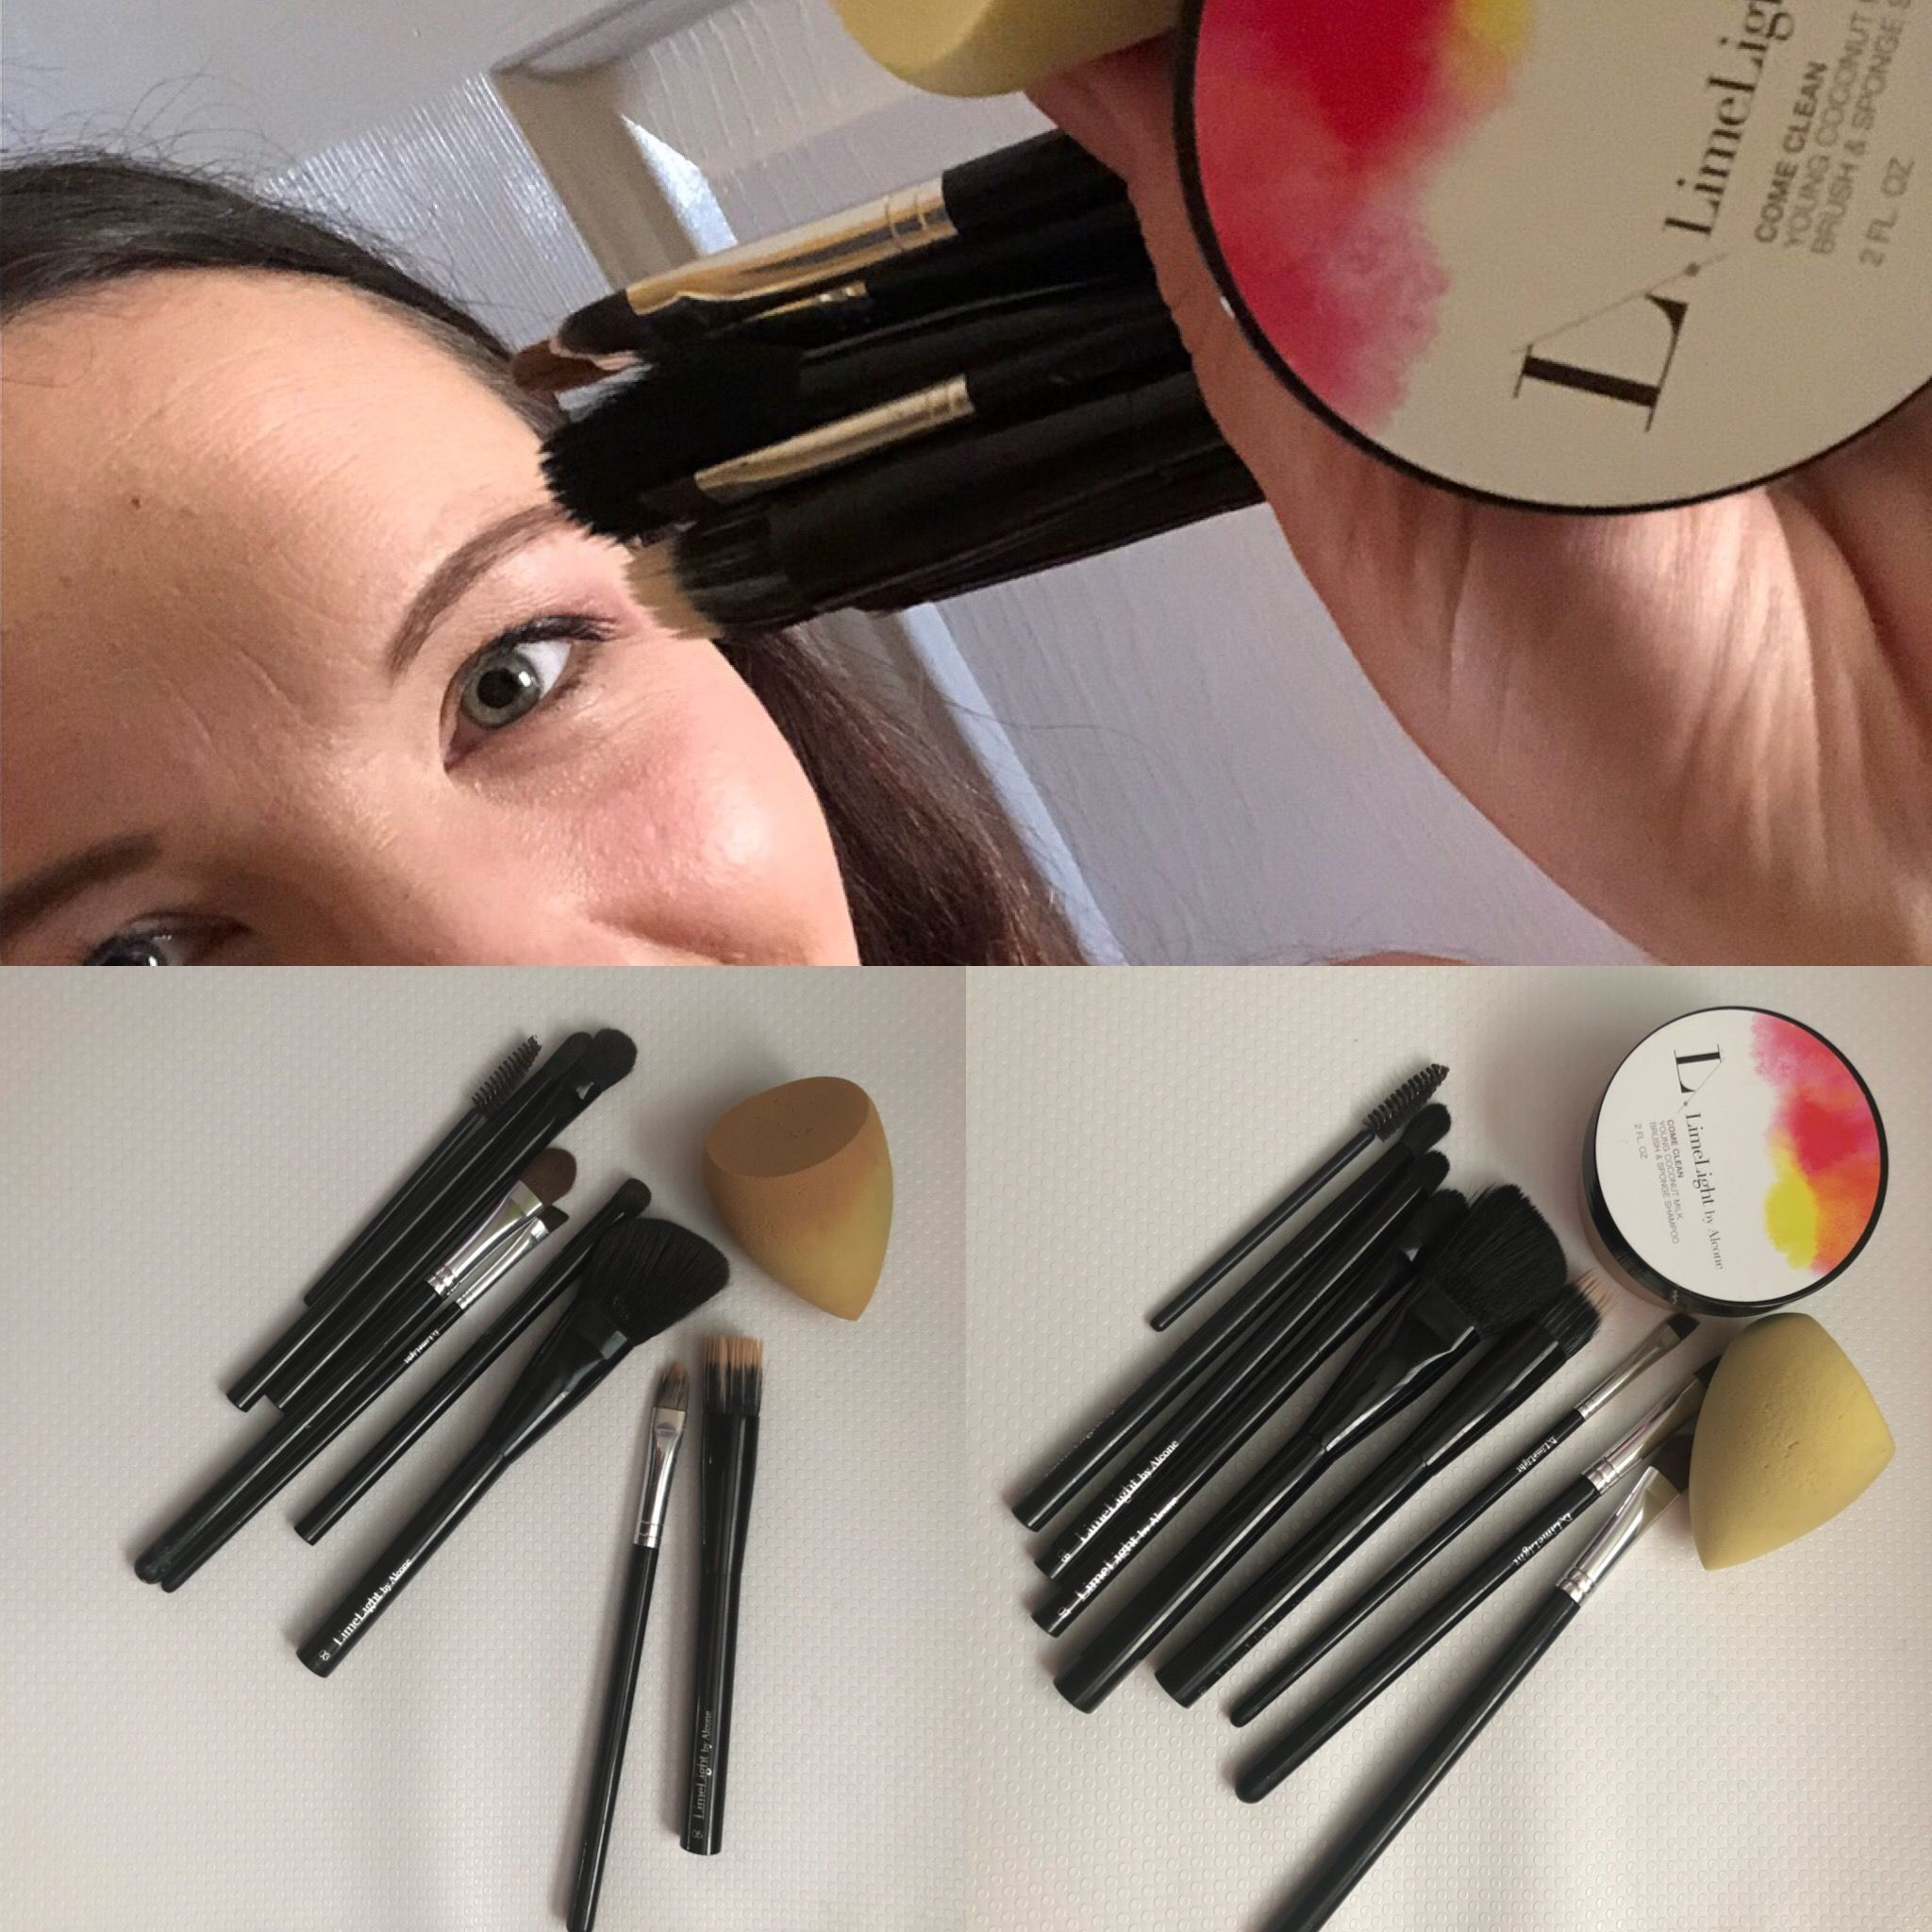 Our chemical free, all natural makeup brush and sponge